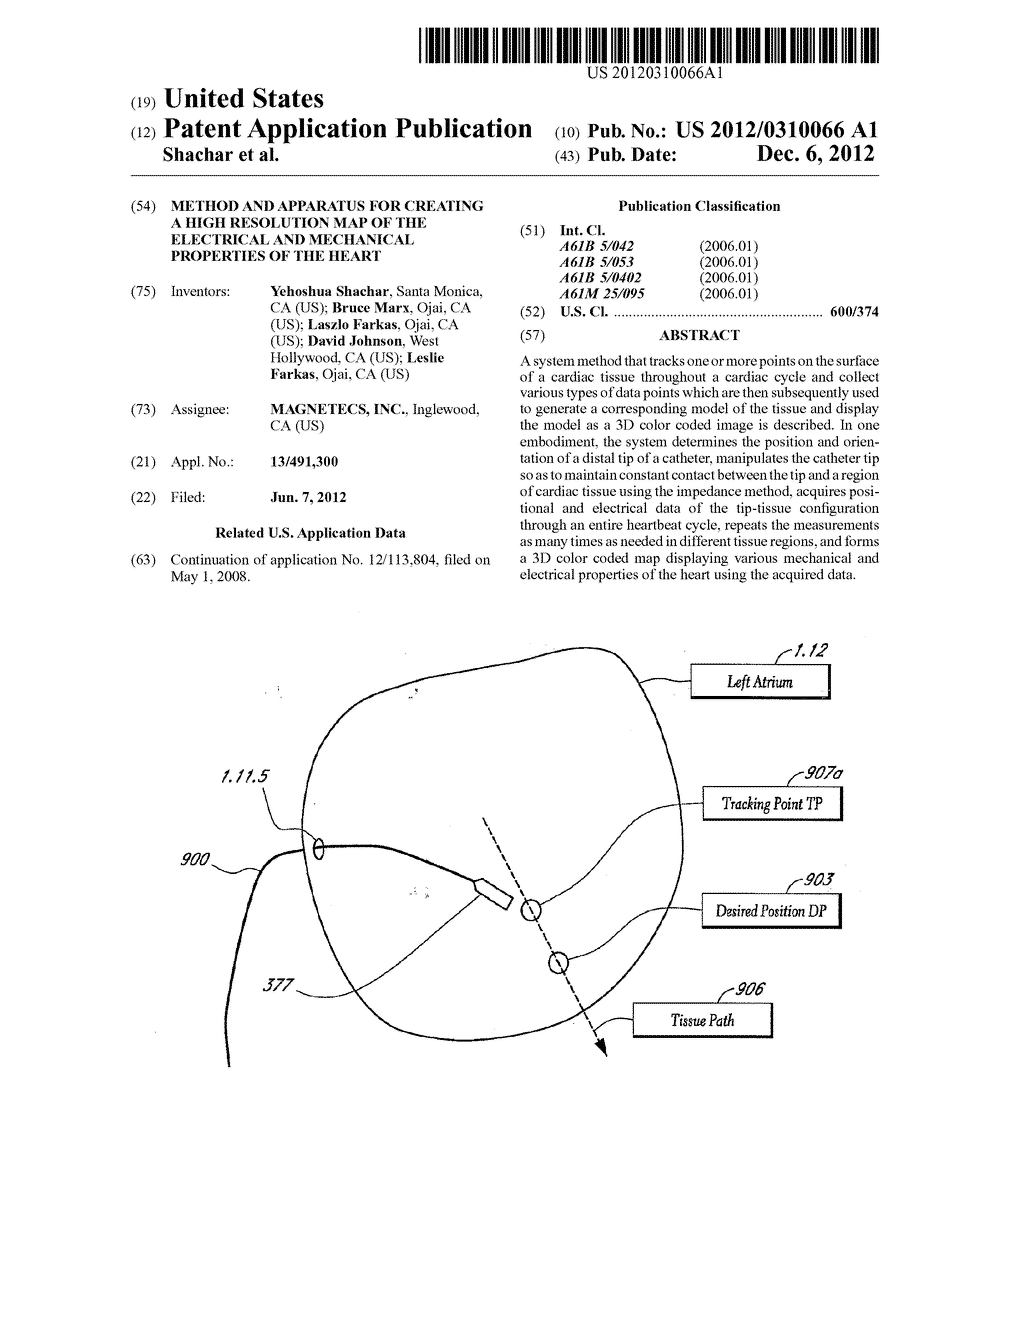 METHOD AND APPARATUS FOR CREATING A HIGH RESOLUTION MAP OF THE ELECTRICAL     AND MECHANICAL PROPERTIES OF THE HEART - diagram, schematic, and image 01